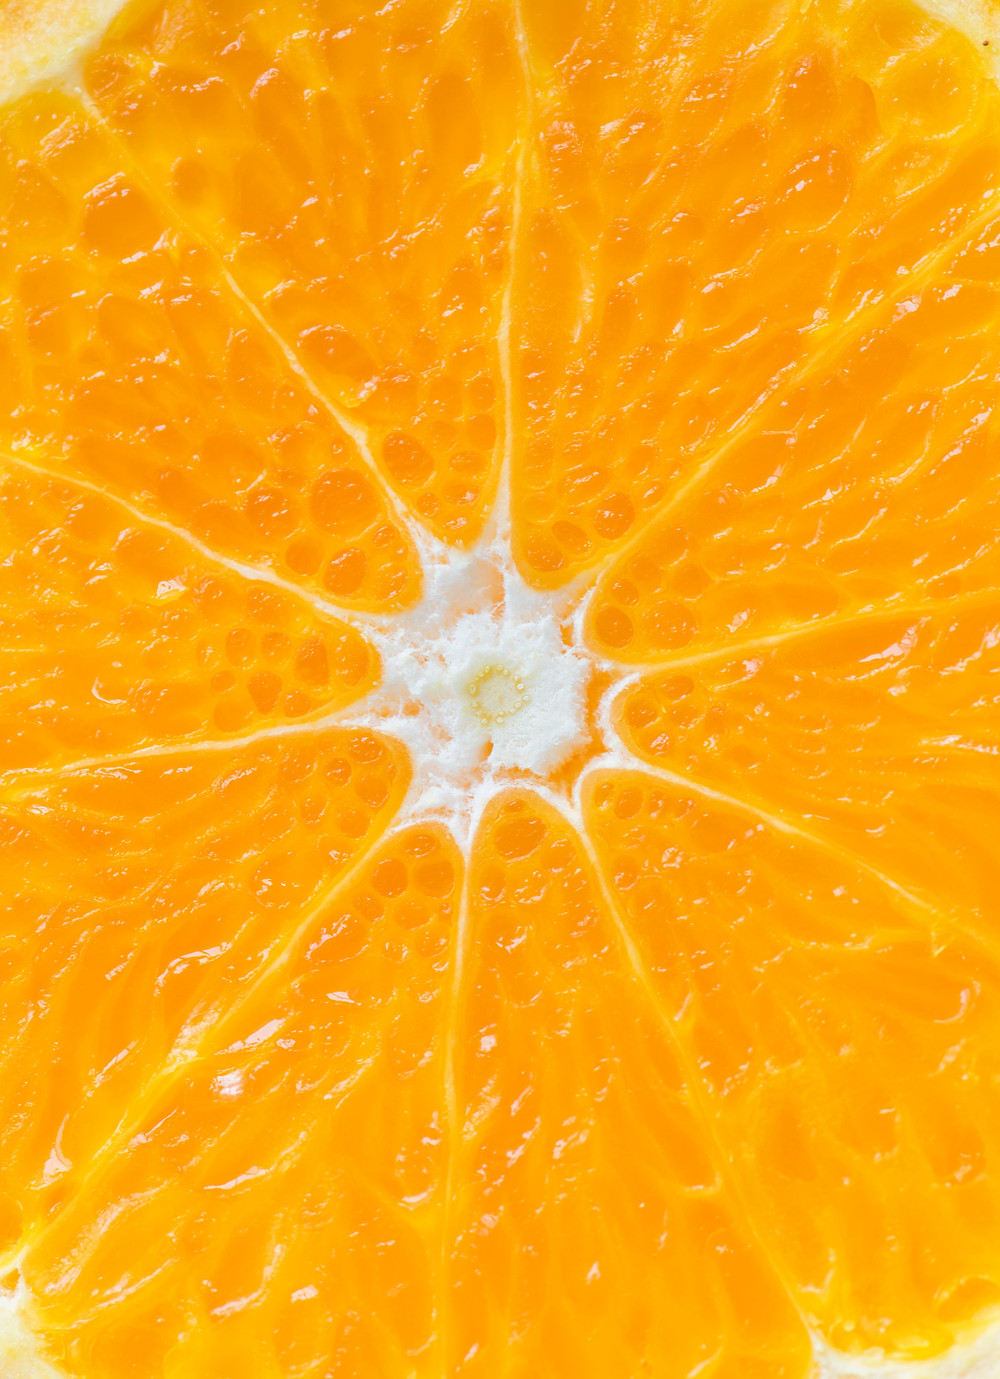 A close up of an orange